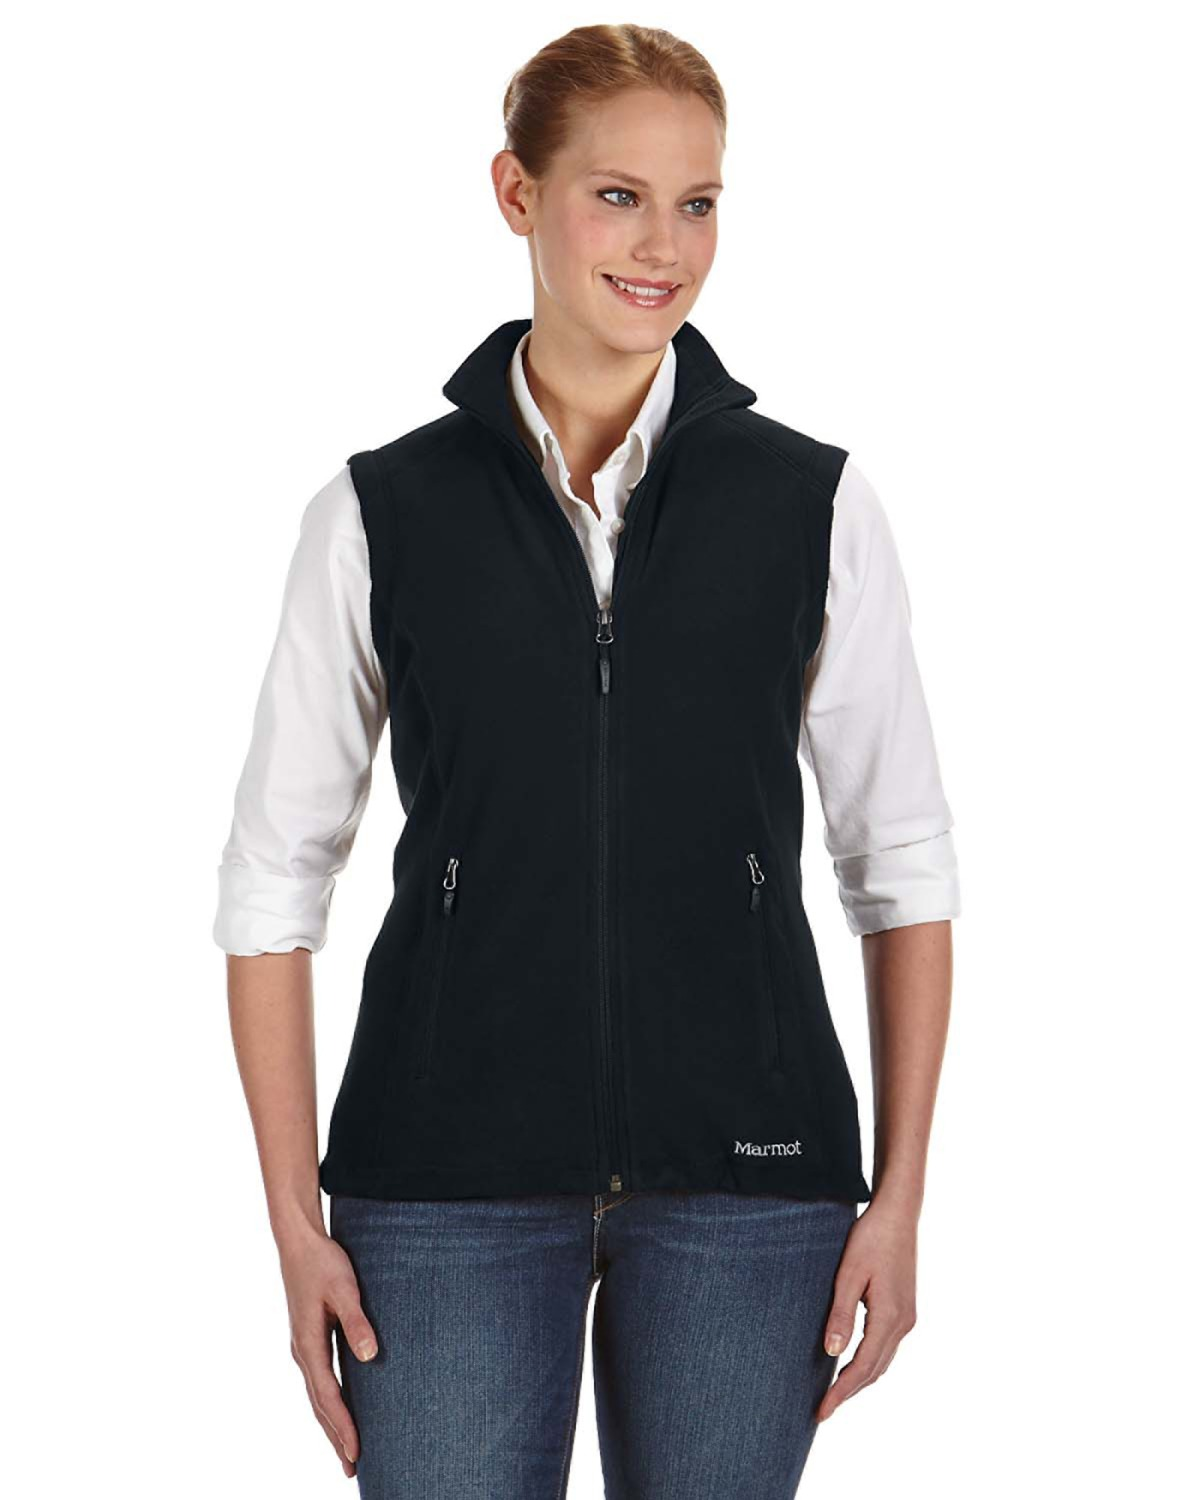 Marmot - 97800, Ladies' Flashpoint Vest, Embroidery, Screen Printing - Logo Masters International